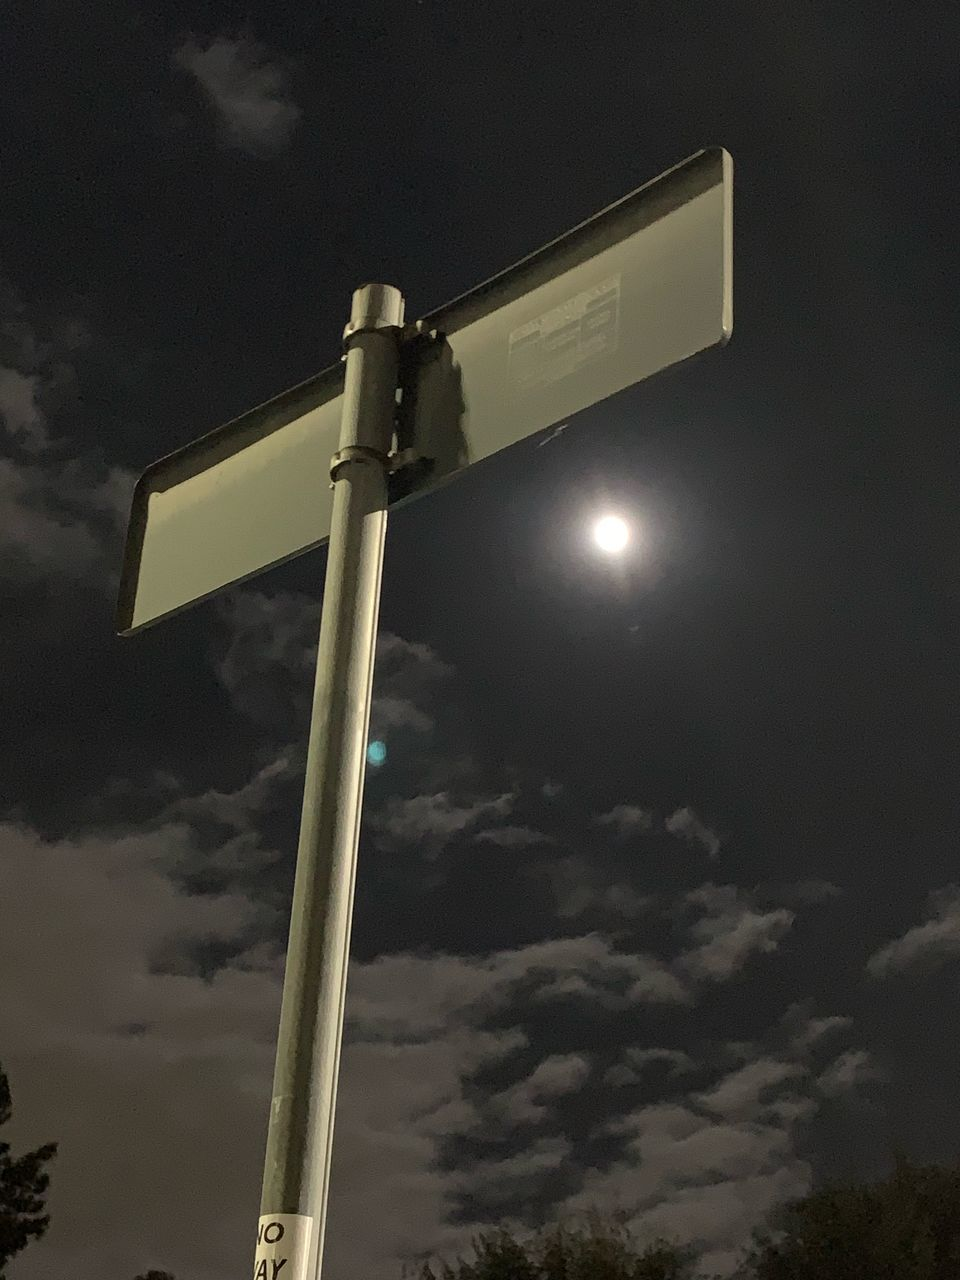 low angle view, sky, cloud - sky, no people, pole, lighting equipment, nature, outdoors, street, illuminated, night, technology, street light, electricity, sign, surveillance, communication, dusk, security